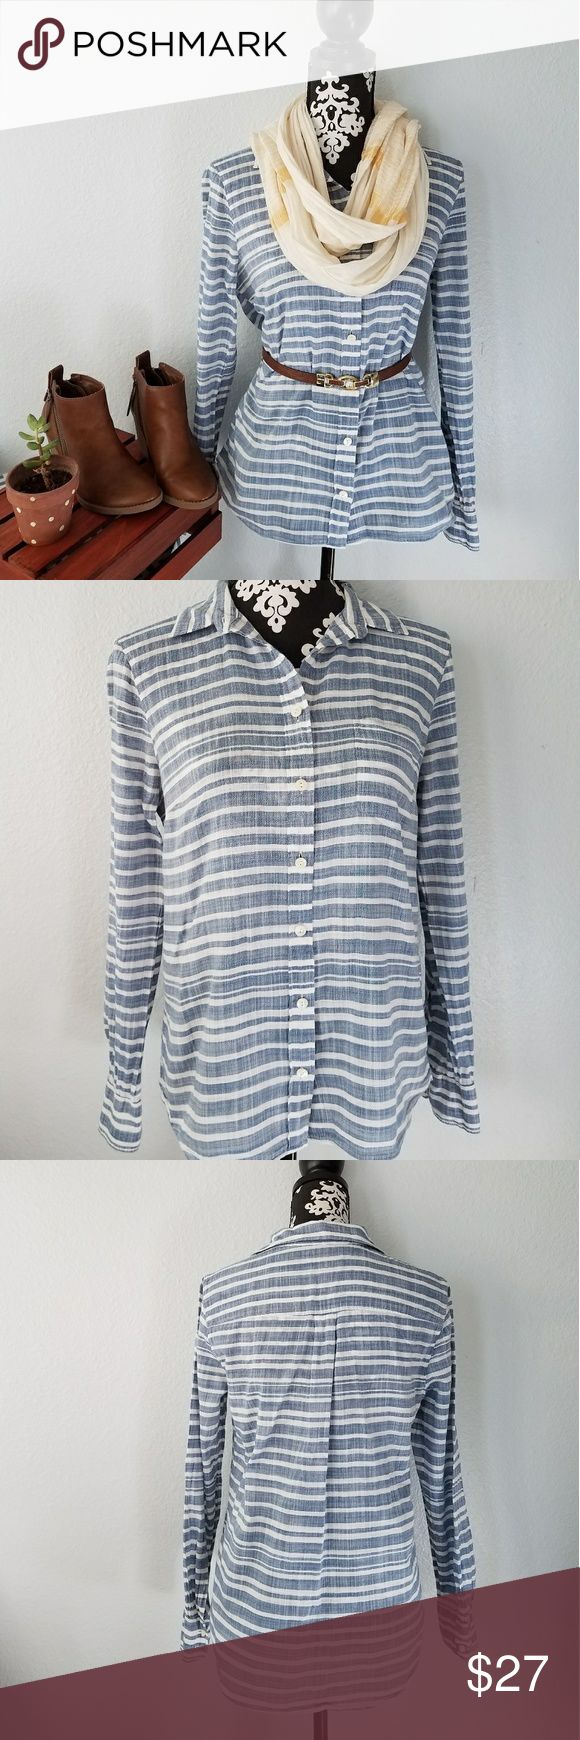 """J.Crew Striped Gauze boy button down Cute J. Crew Gauze boy striped button down blouse. Blue and white in color with a pocket  on the left chest.  100% cotton, lightly used I'm great condition. Size 8.  Measures  Length 24 1/2"""" Armpit to armpit 20"""" Sleeves 24"""" J. Crew Tops Button Down Shirts"""